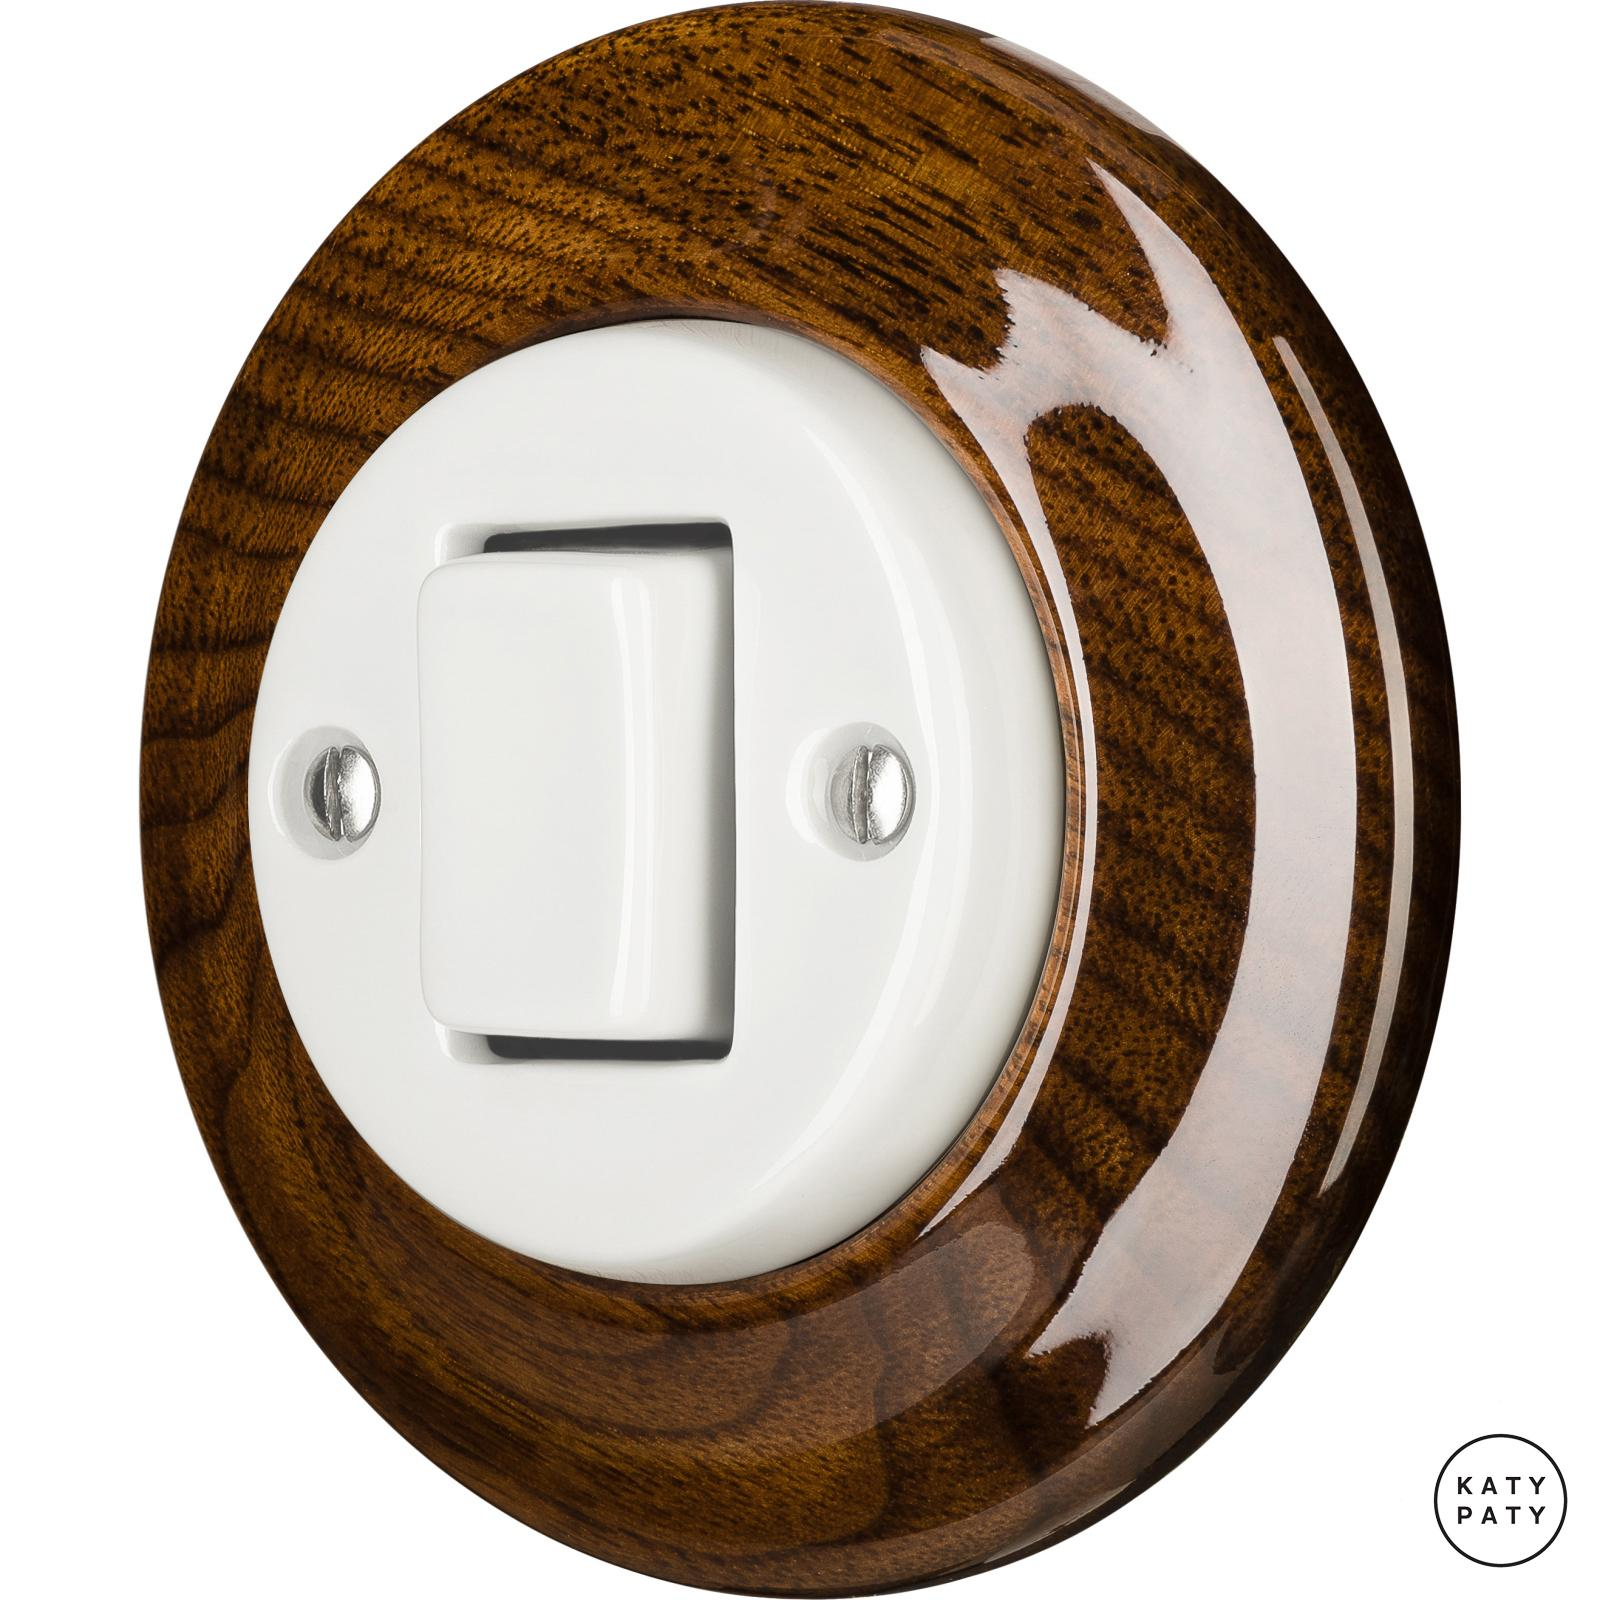 Porcelain switches - 1 key - FAT ()  - NUCLEUS | Katy Paty